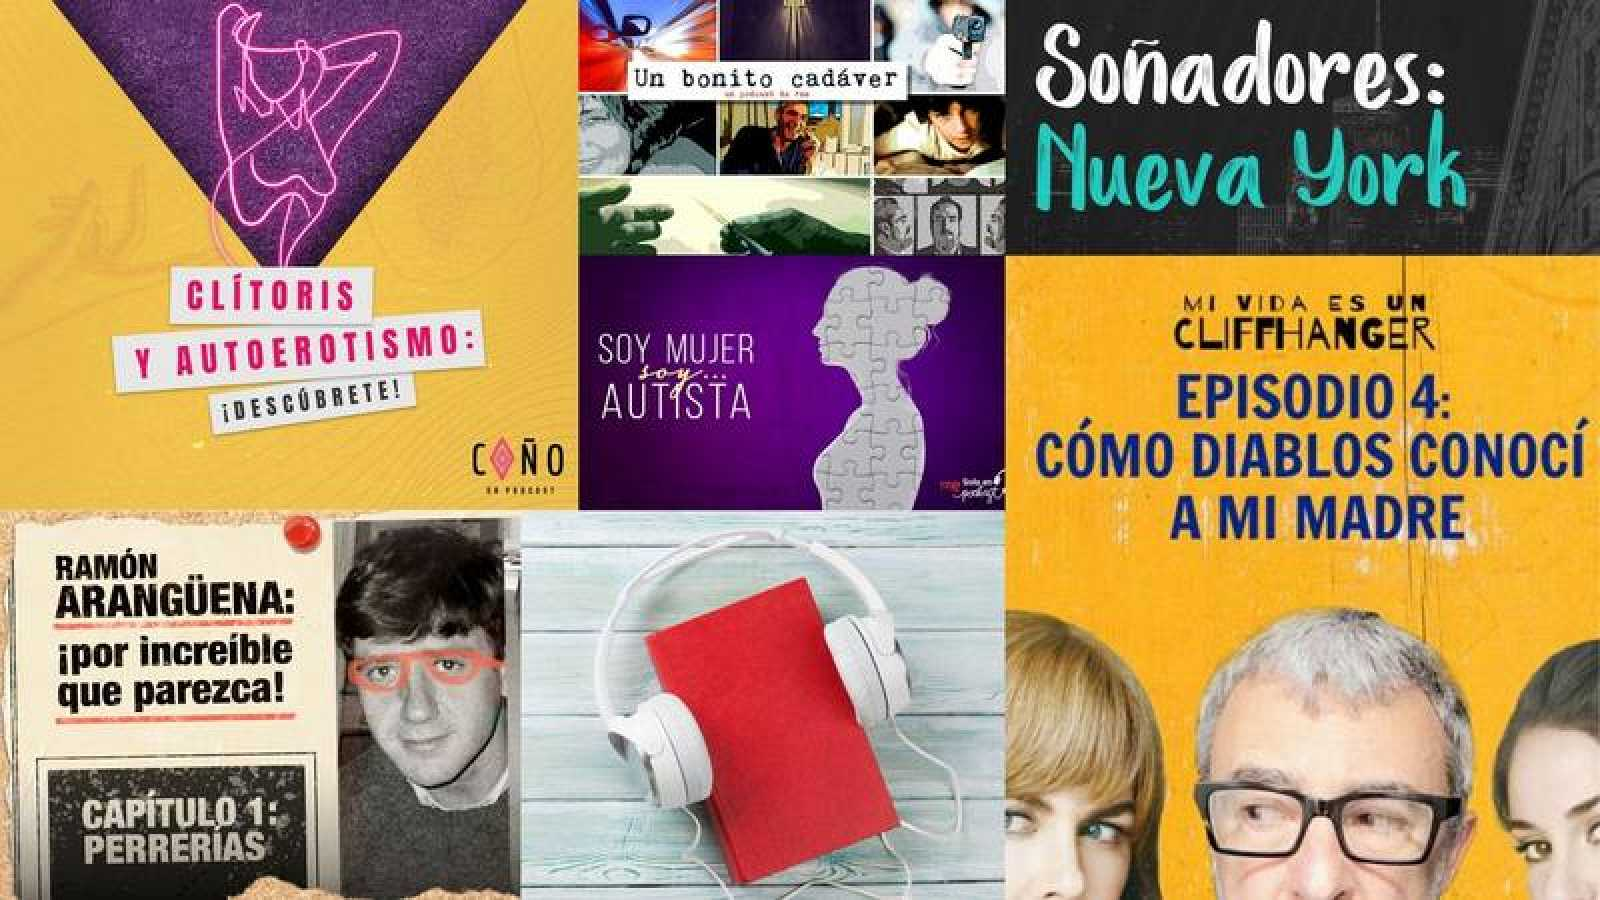 RNE Solo en Podcast: Alternativas sonoras para la cuarentena